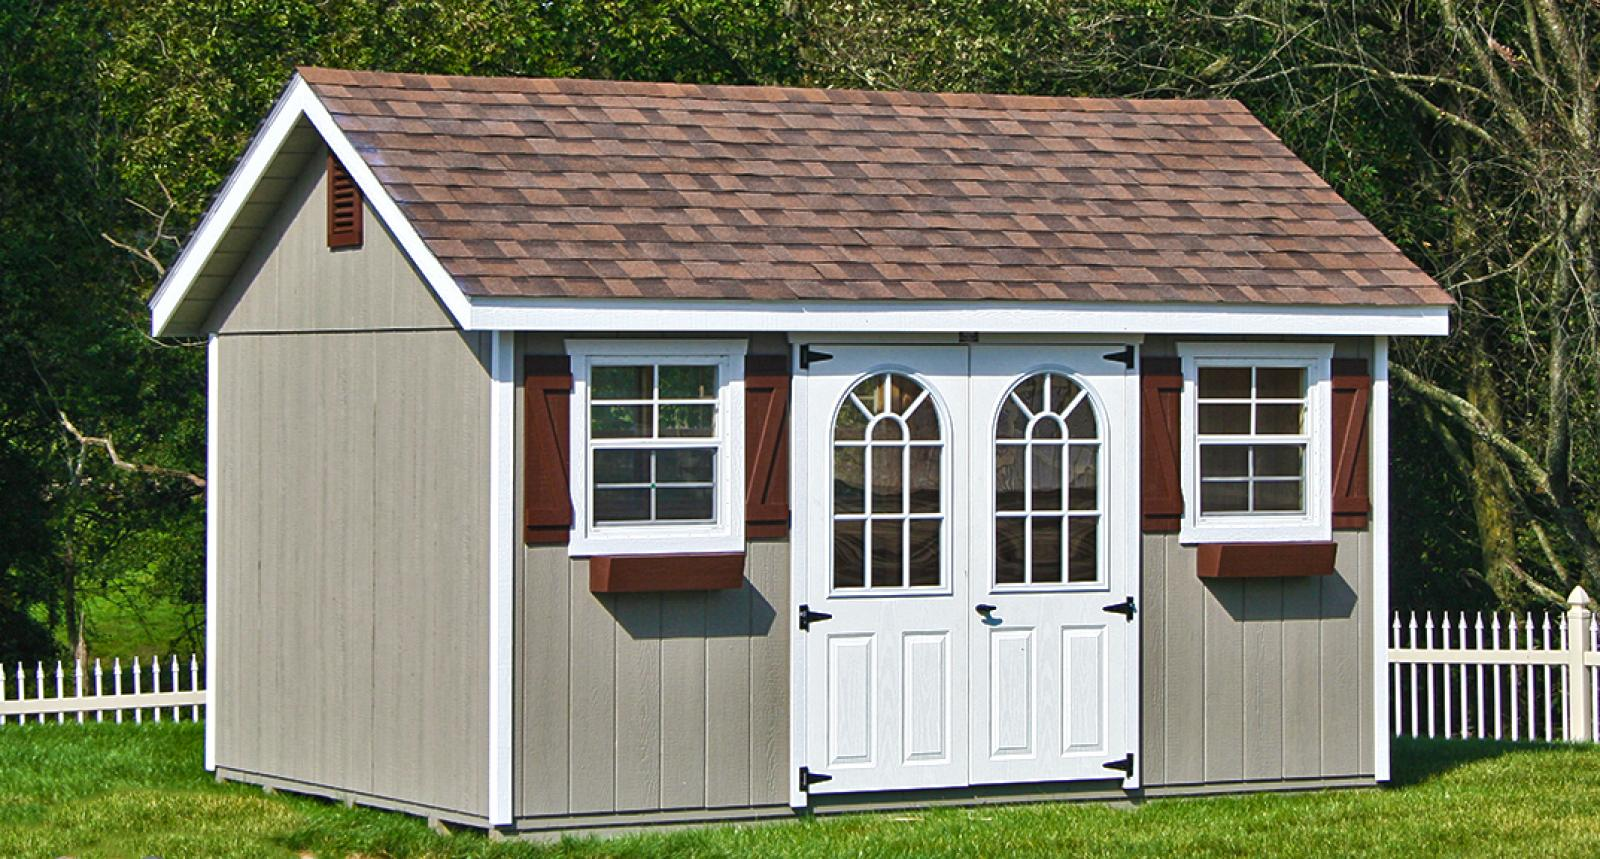 Save space by using storage sheds